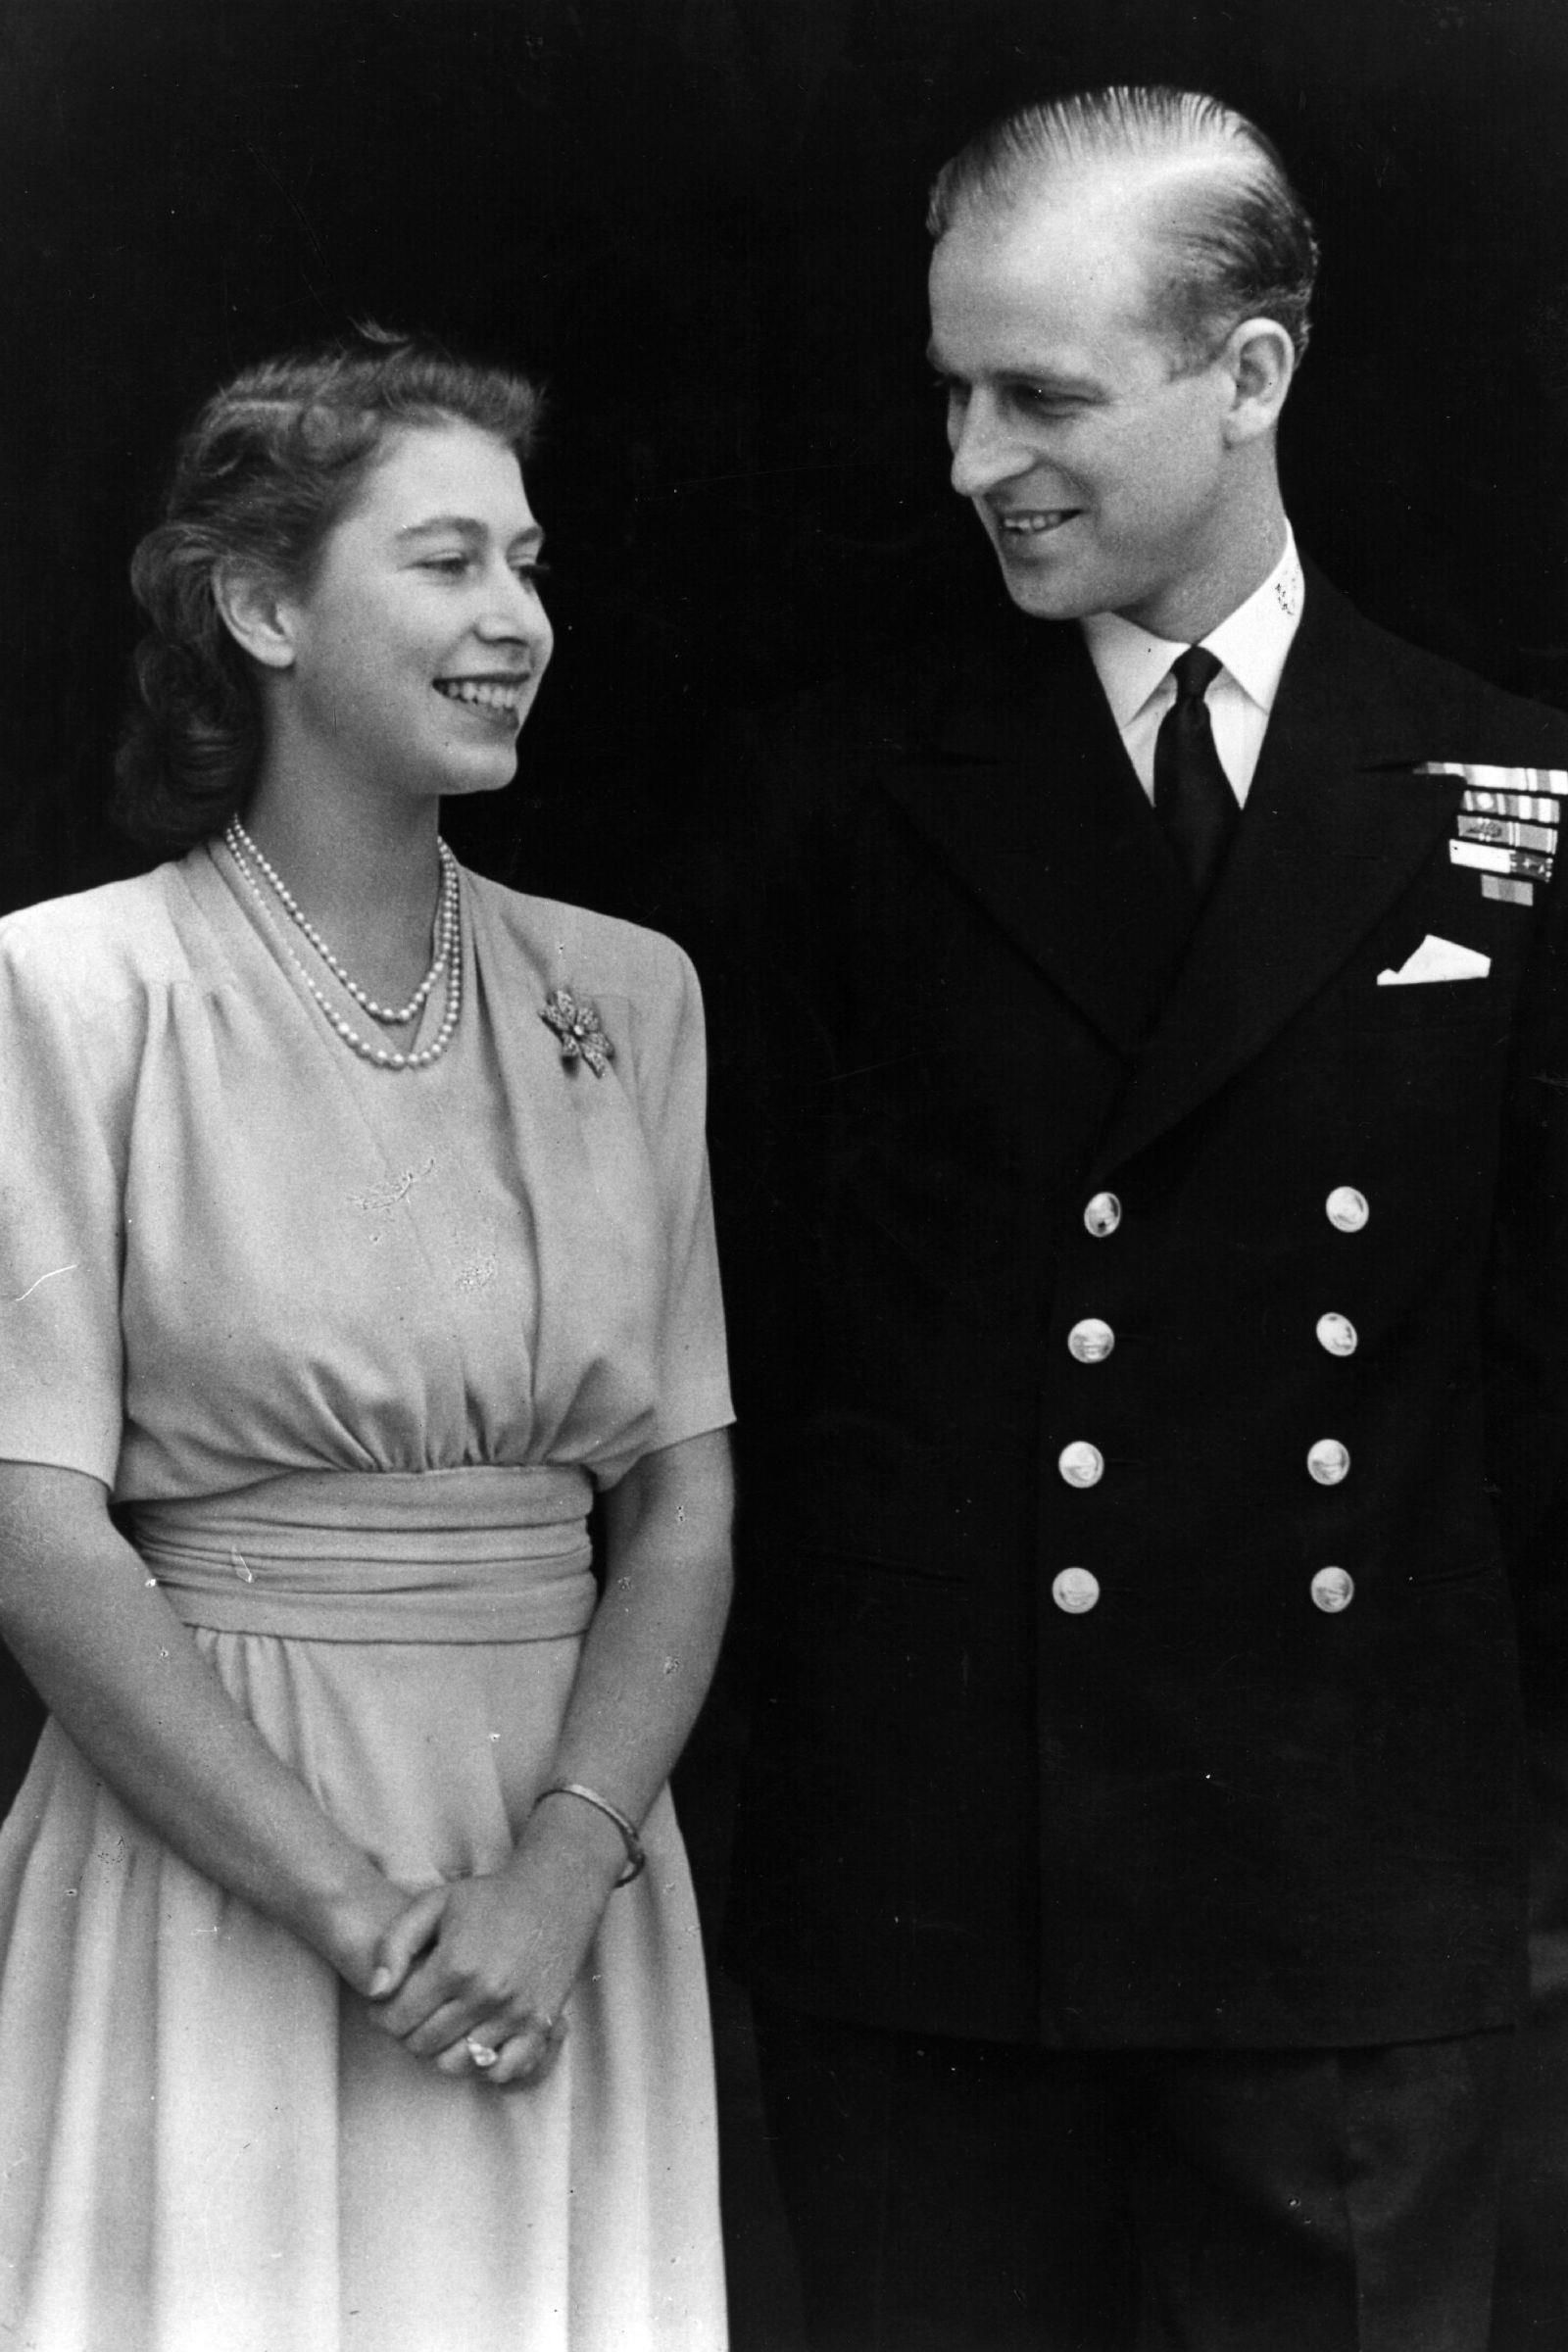 The Sweet (and Long!) Romance of Queen Elizabeth II and